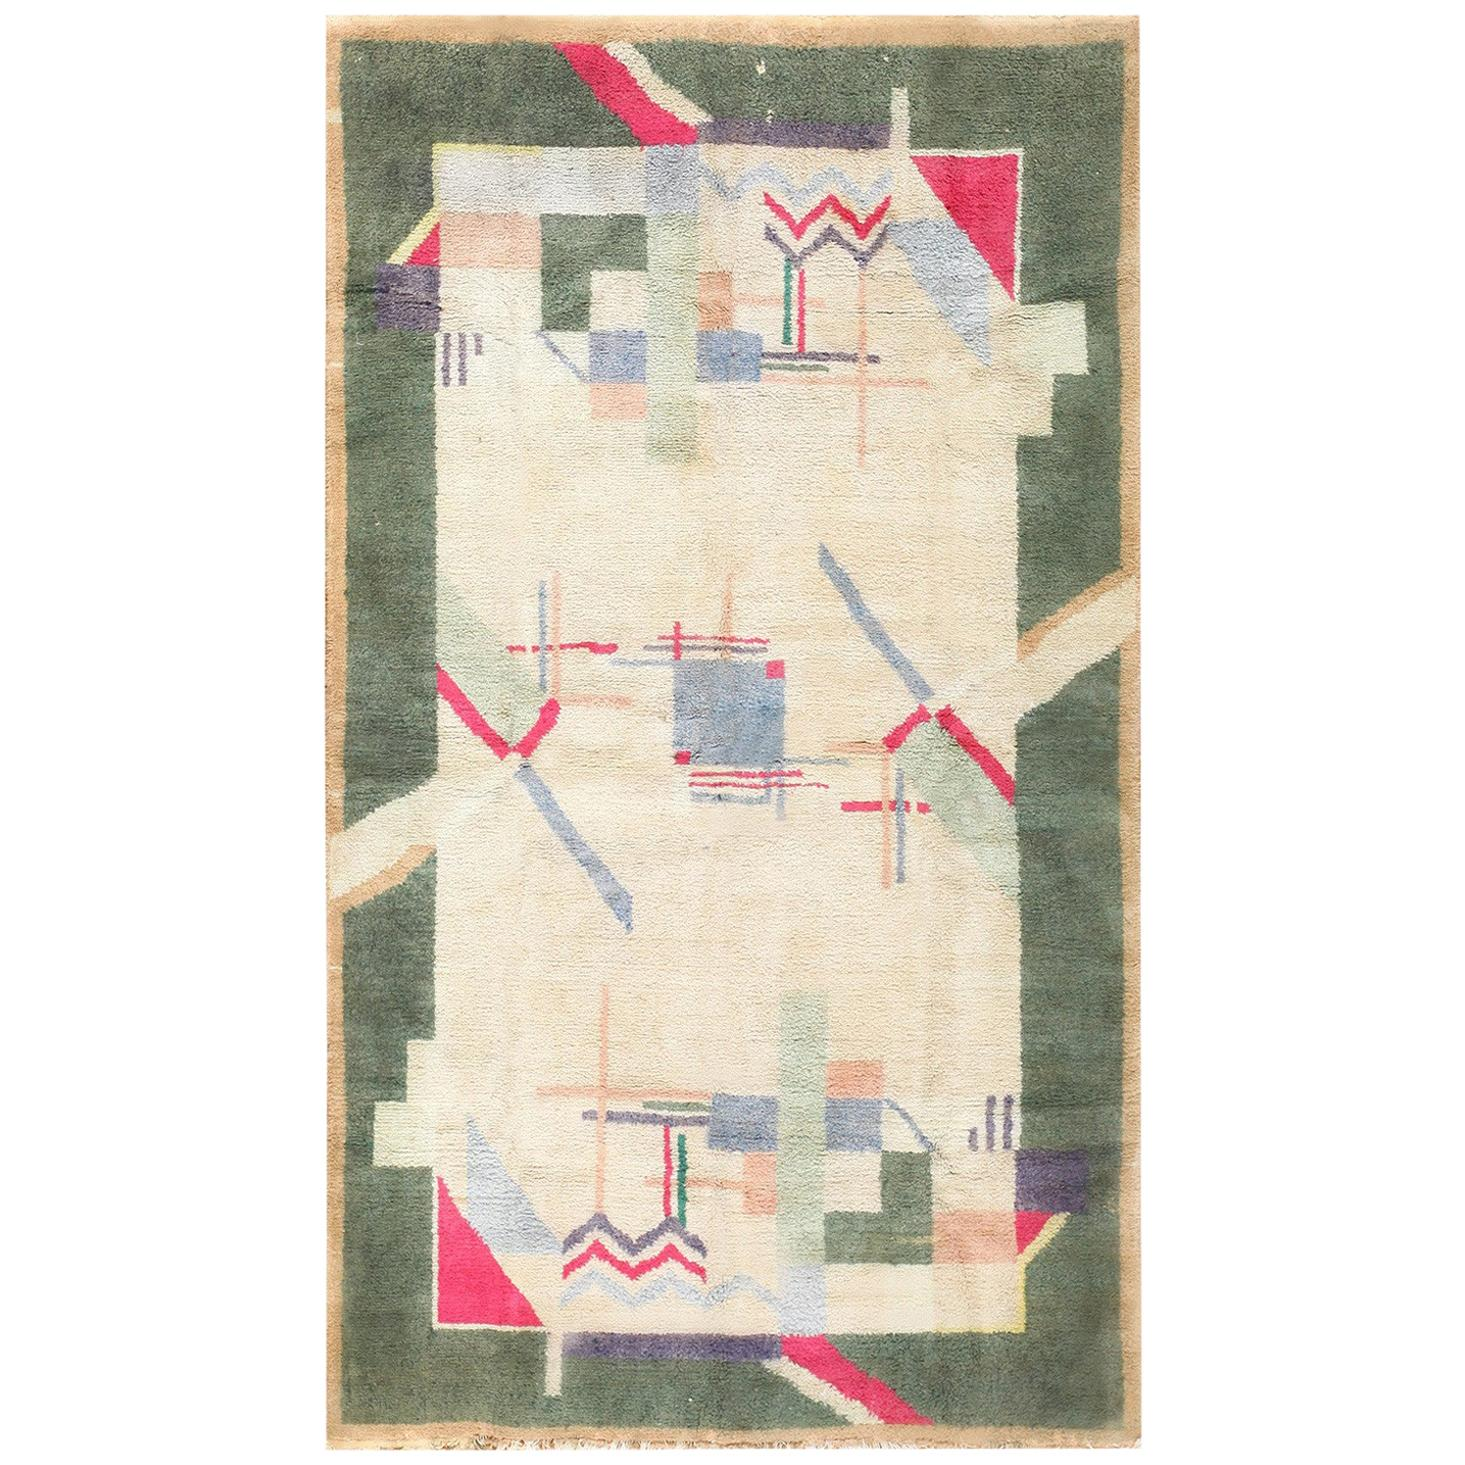 Cotton Indian Art Deco Rug. Size: 4 ft 1 in x 6 ft 10 in (1.24 m x 2.08 m)